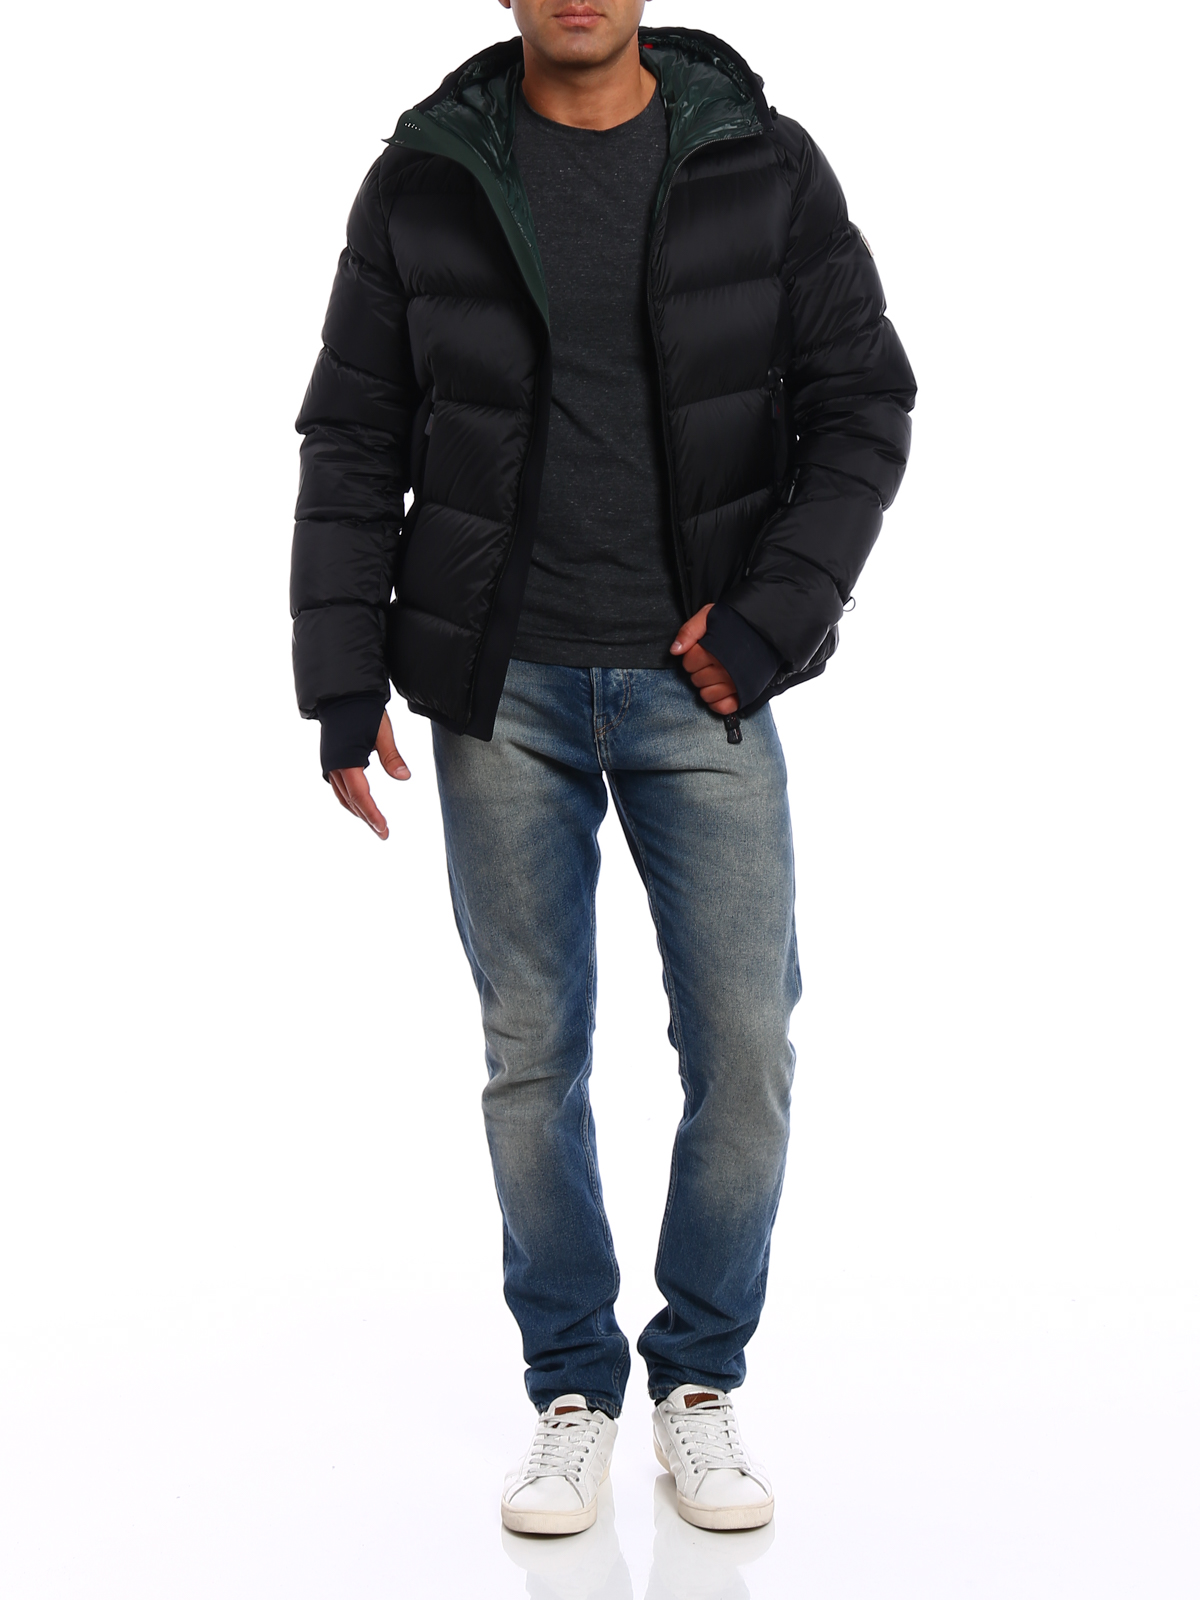 Hintertux technical down jacket shop online: MONCLER GRENOBLE